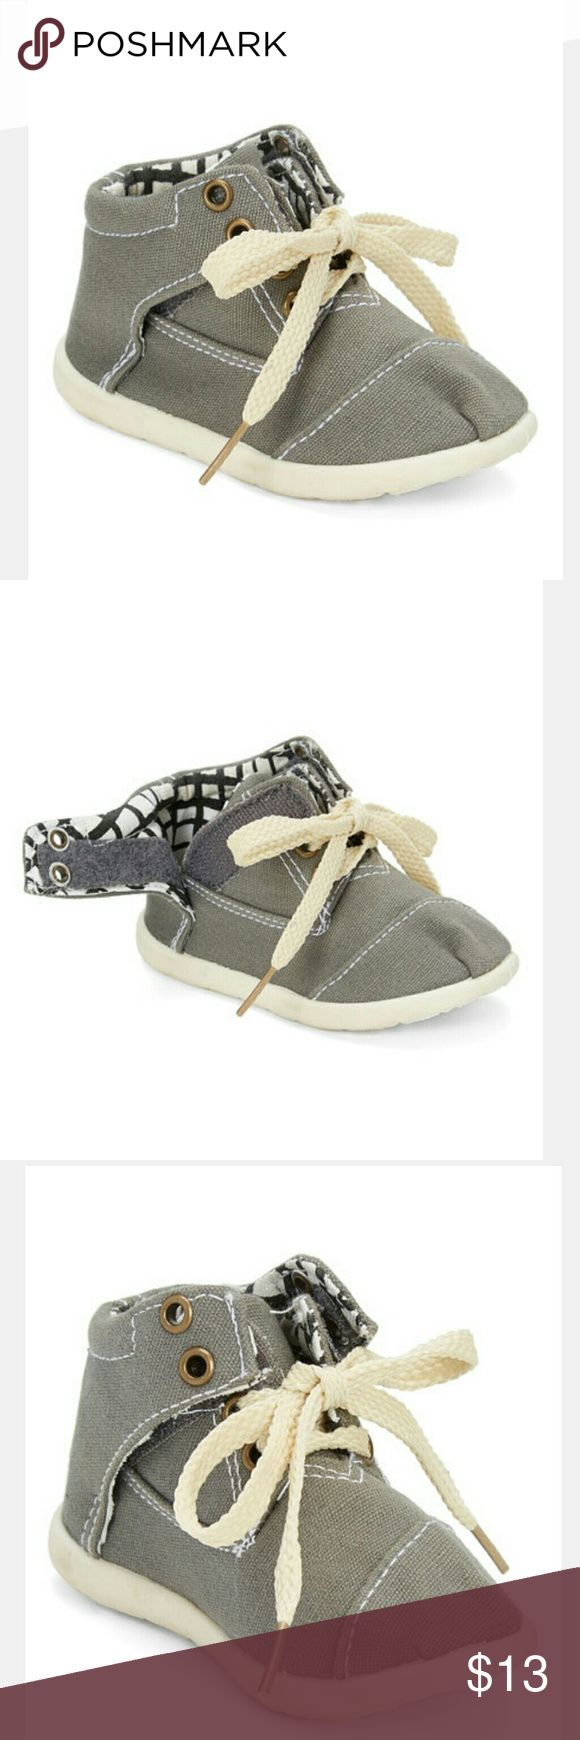 Toddler velcro tie shoes Grey high top never worn velcro shoes My buddies  Shoes Baby & Walker